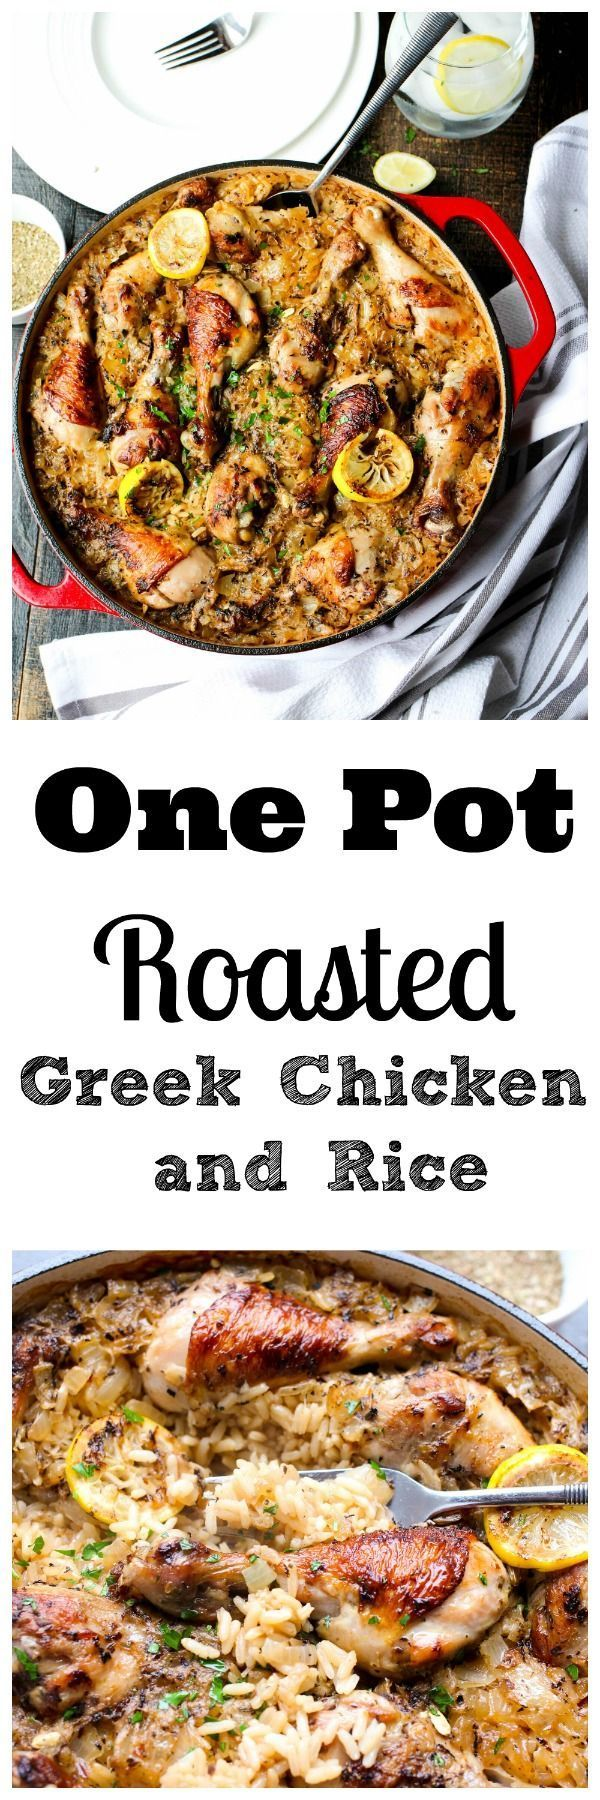 An incredibly easy and scrumptious chicken and rice dish made in just one pot!!!